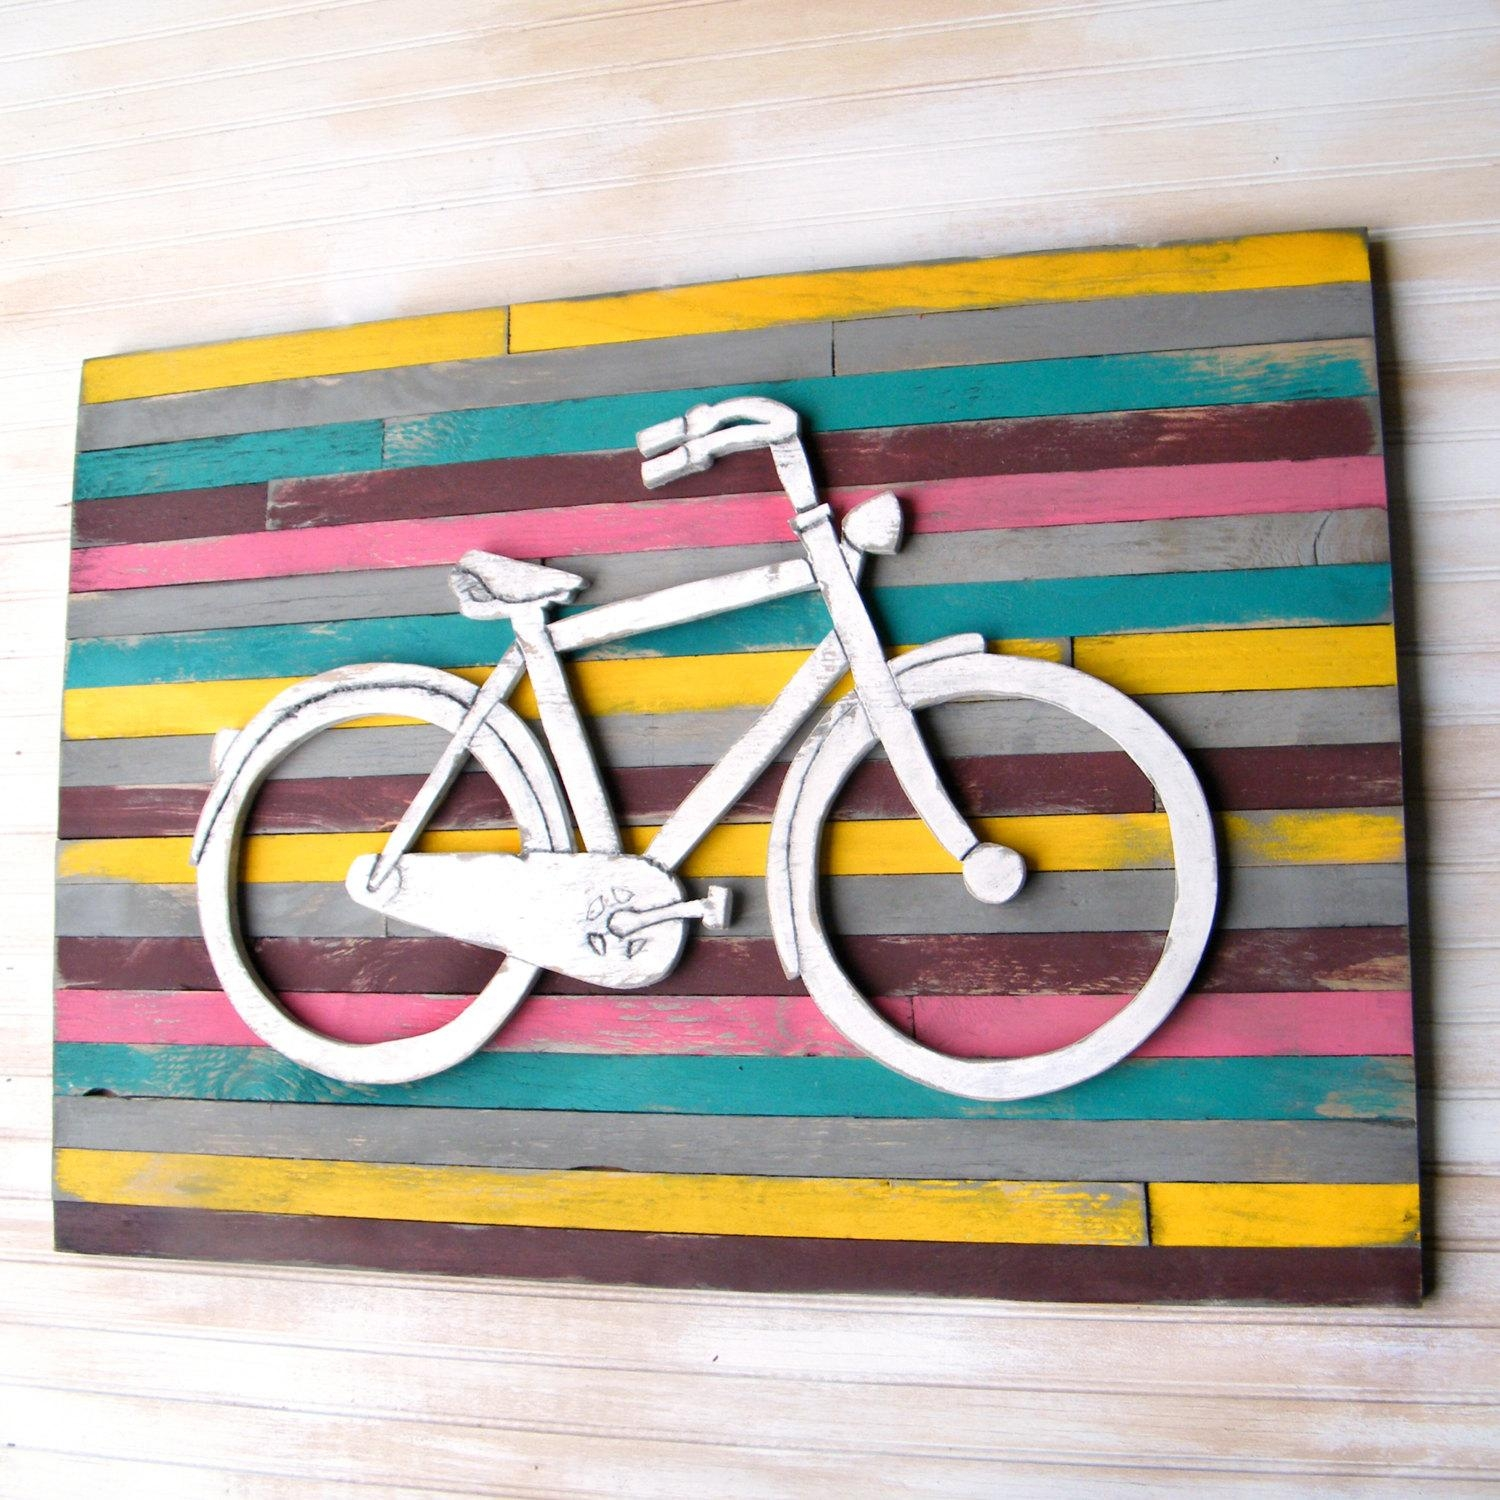 Bicycle Art Pallet Background Large Bicycle Wall Decor Wooden With Bicycle Wall Art Decor (View 7 of 20)